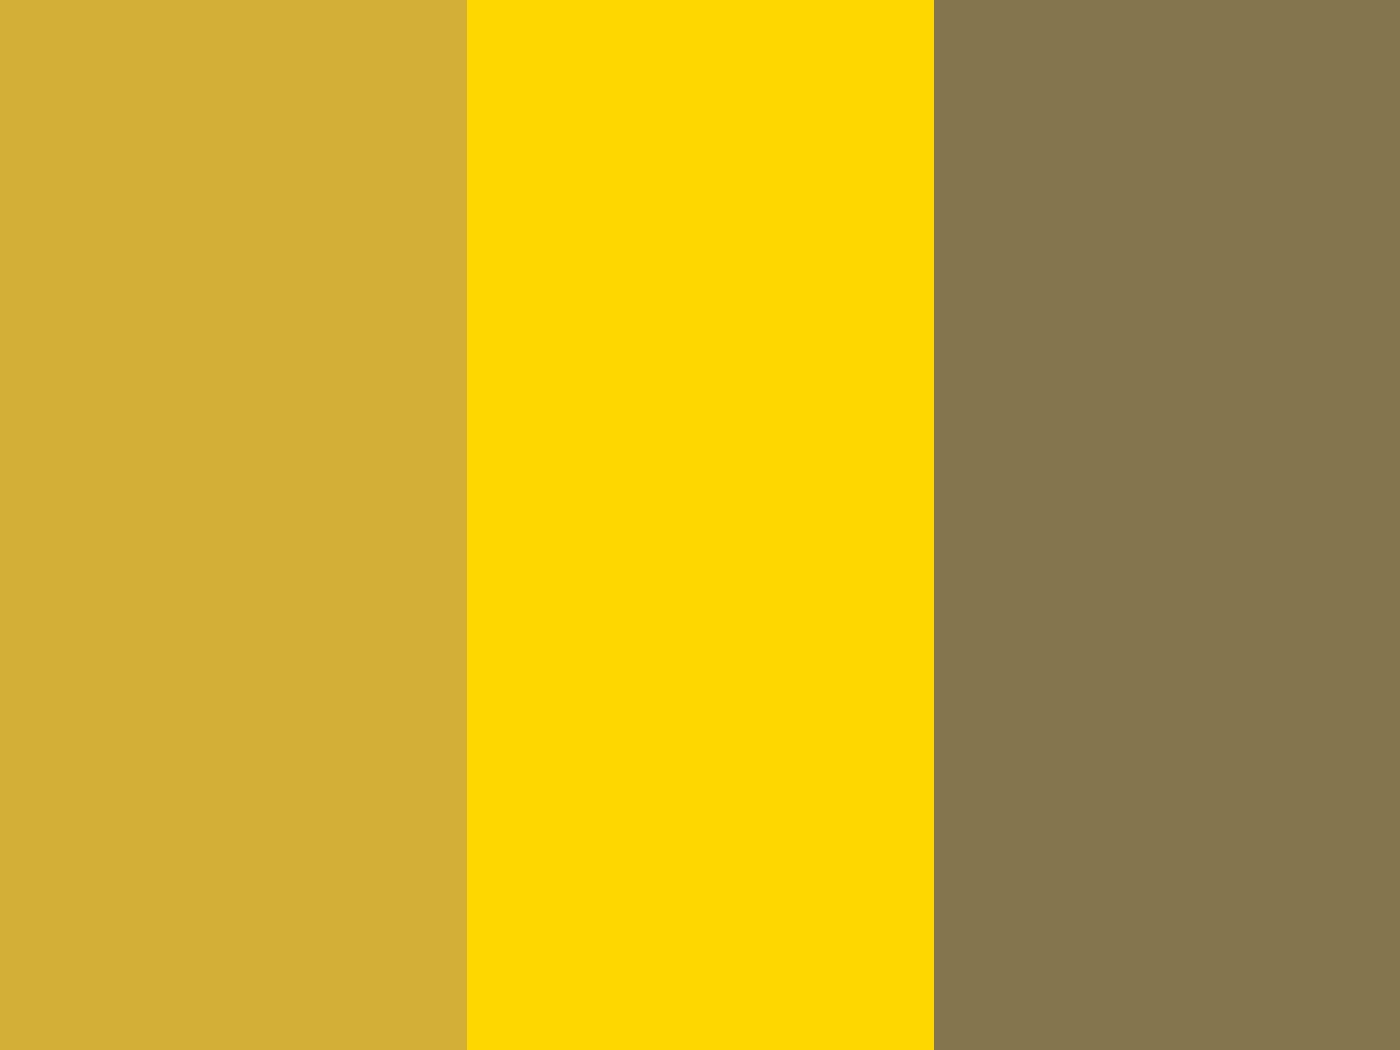 Metallic Gold Color Background Gold metallic gold web golden and gold 1400x1050